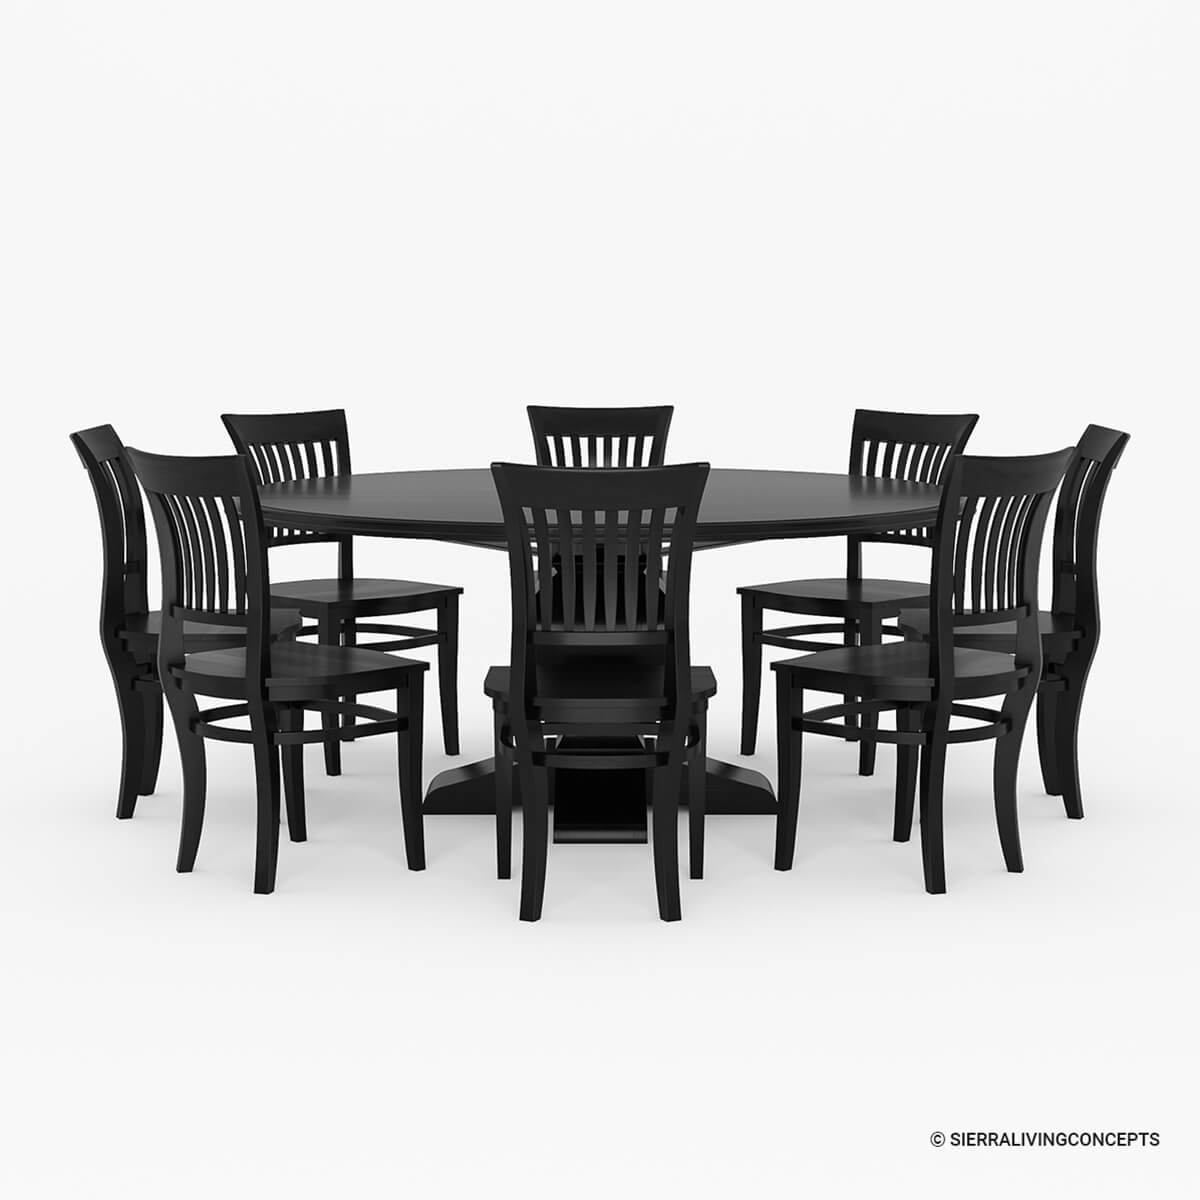 Sierra nevada large round rustic solid wood dining table for Dinner table for 8